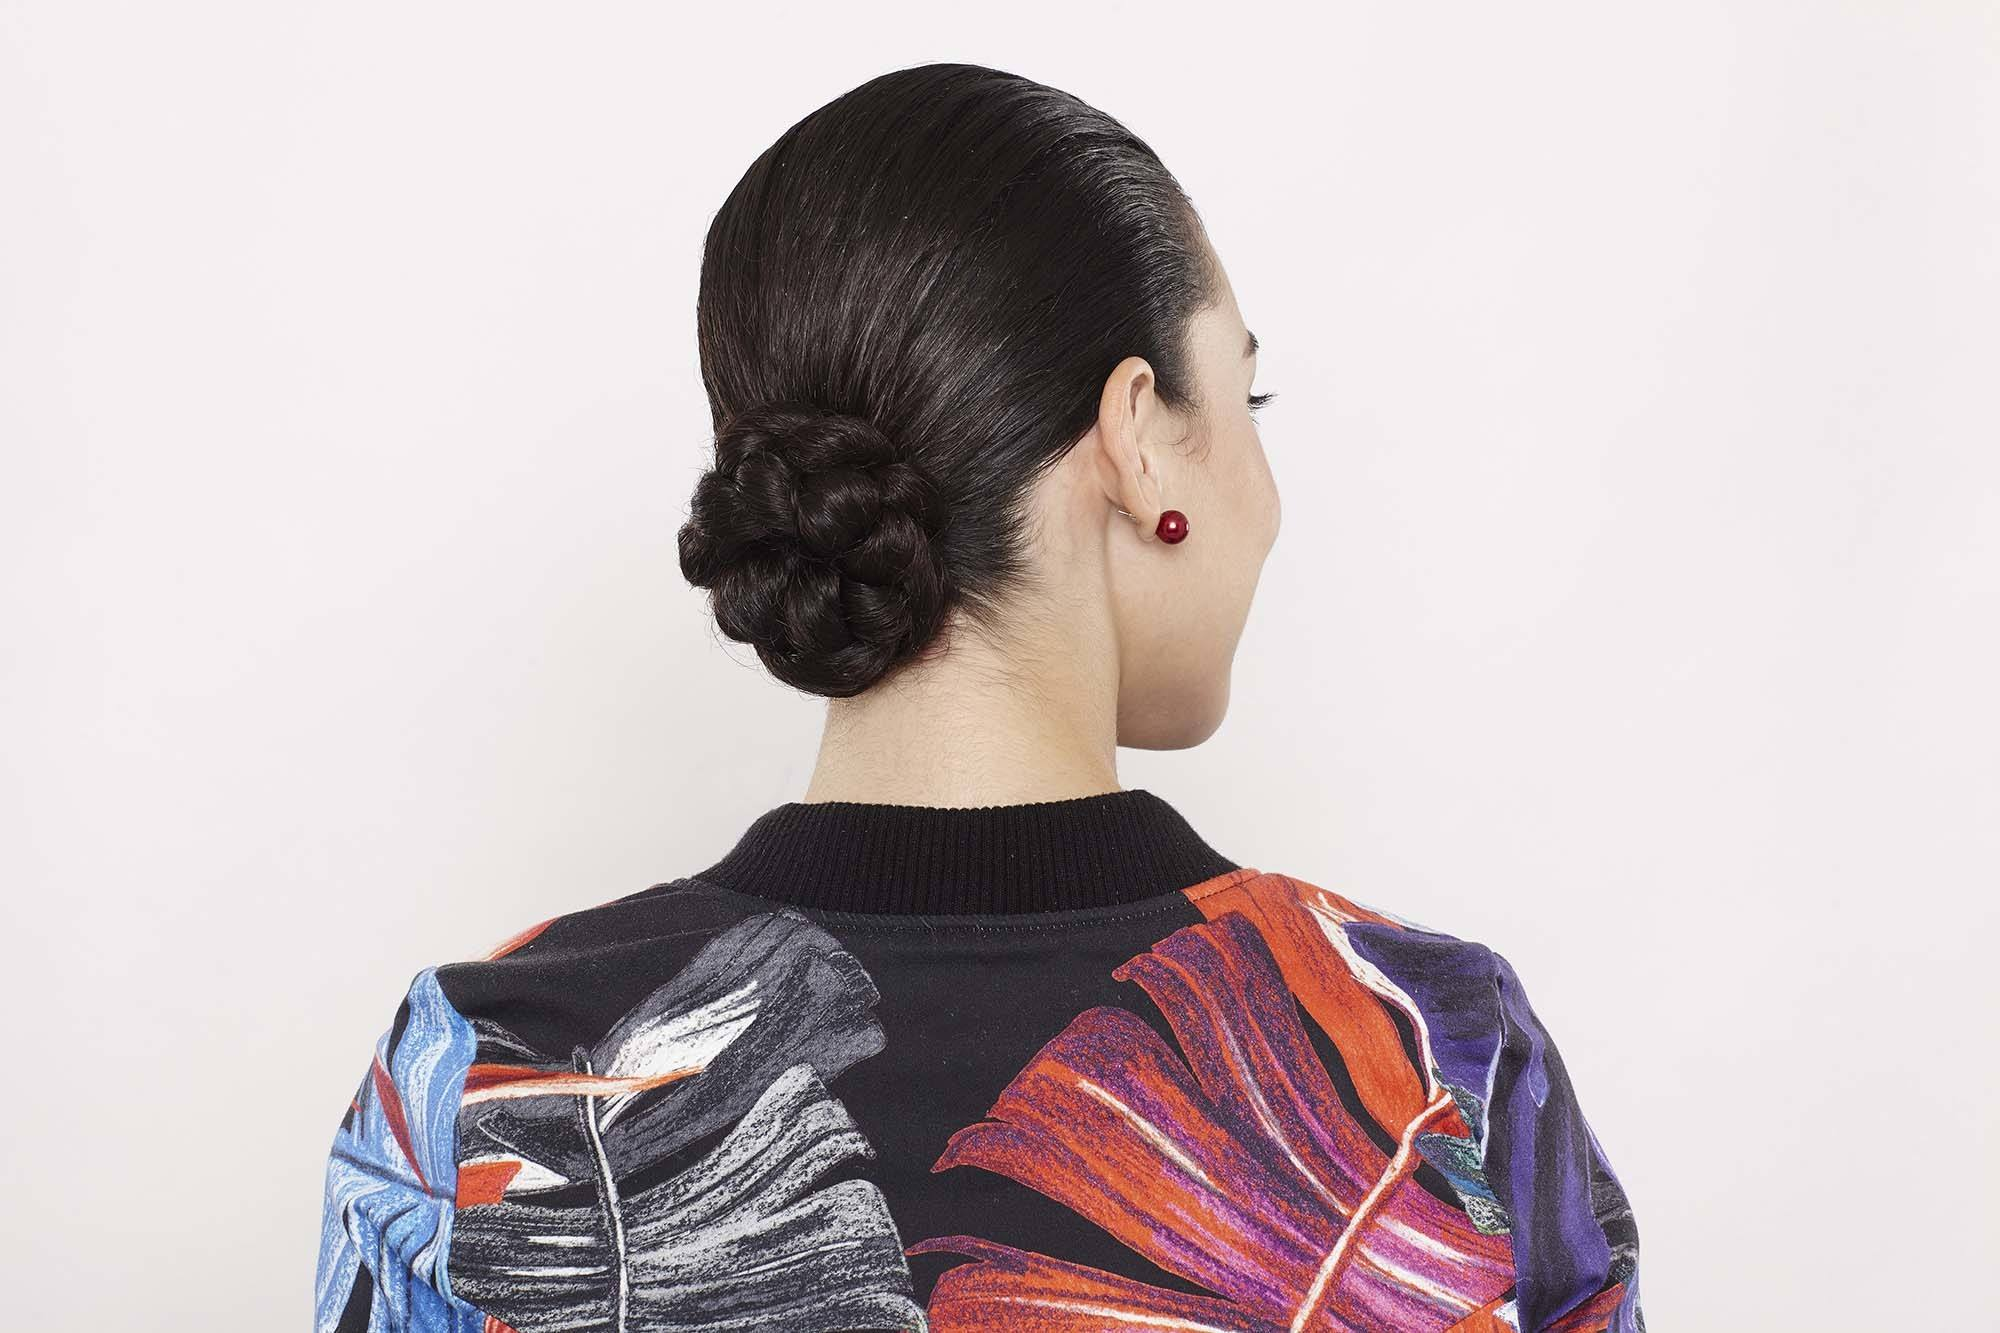 close up shot of woman with low braided bun hairstyle, wearing sporty clothing and posing in a studio